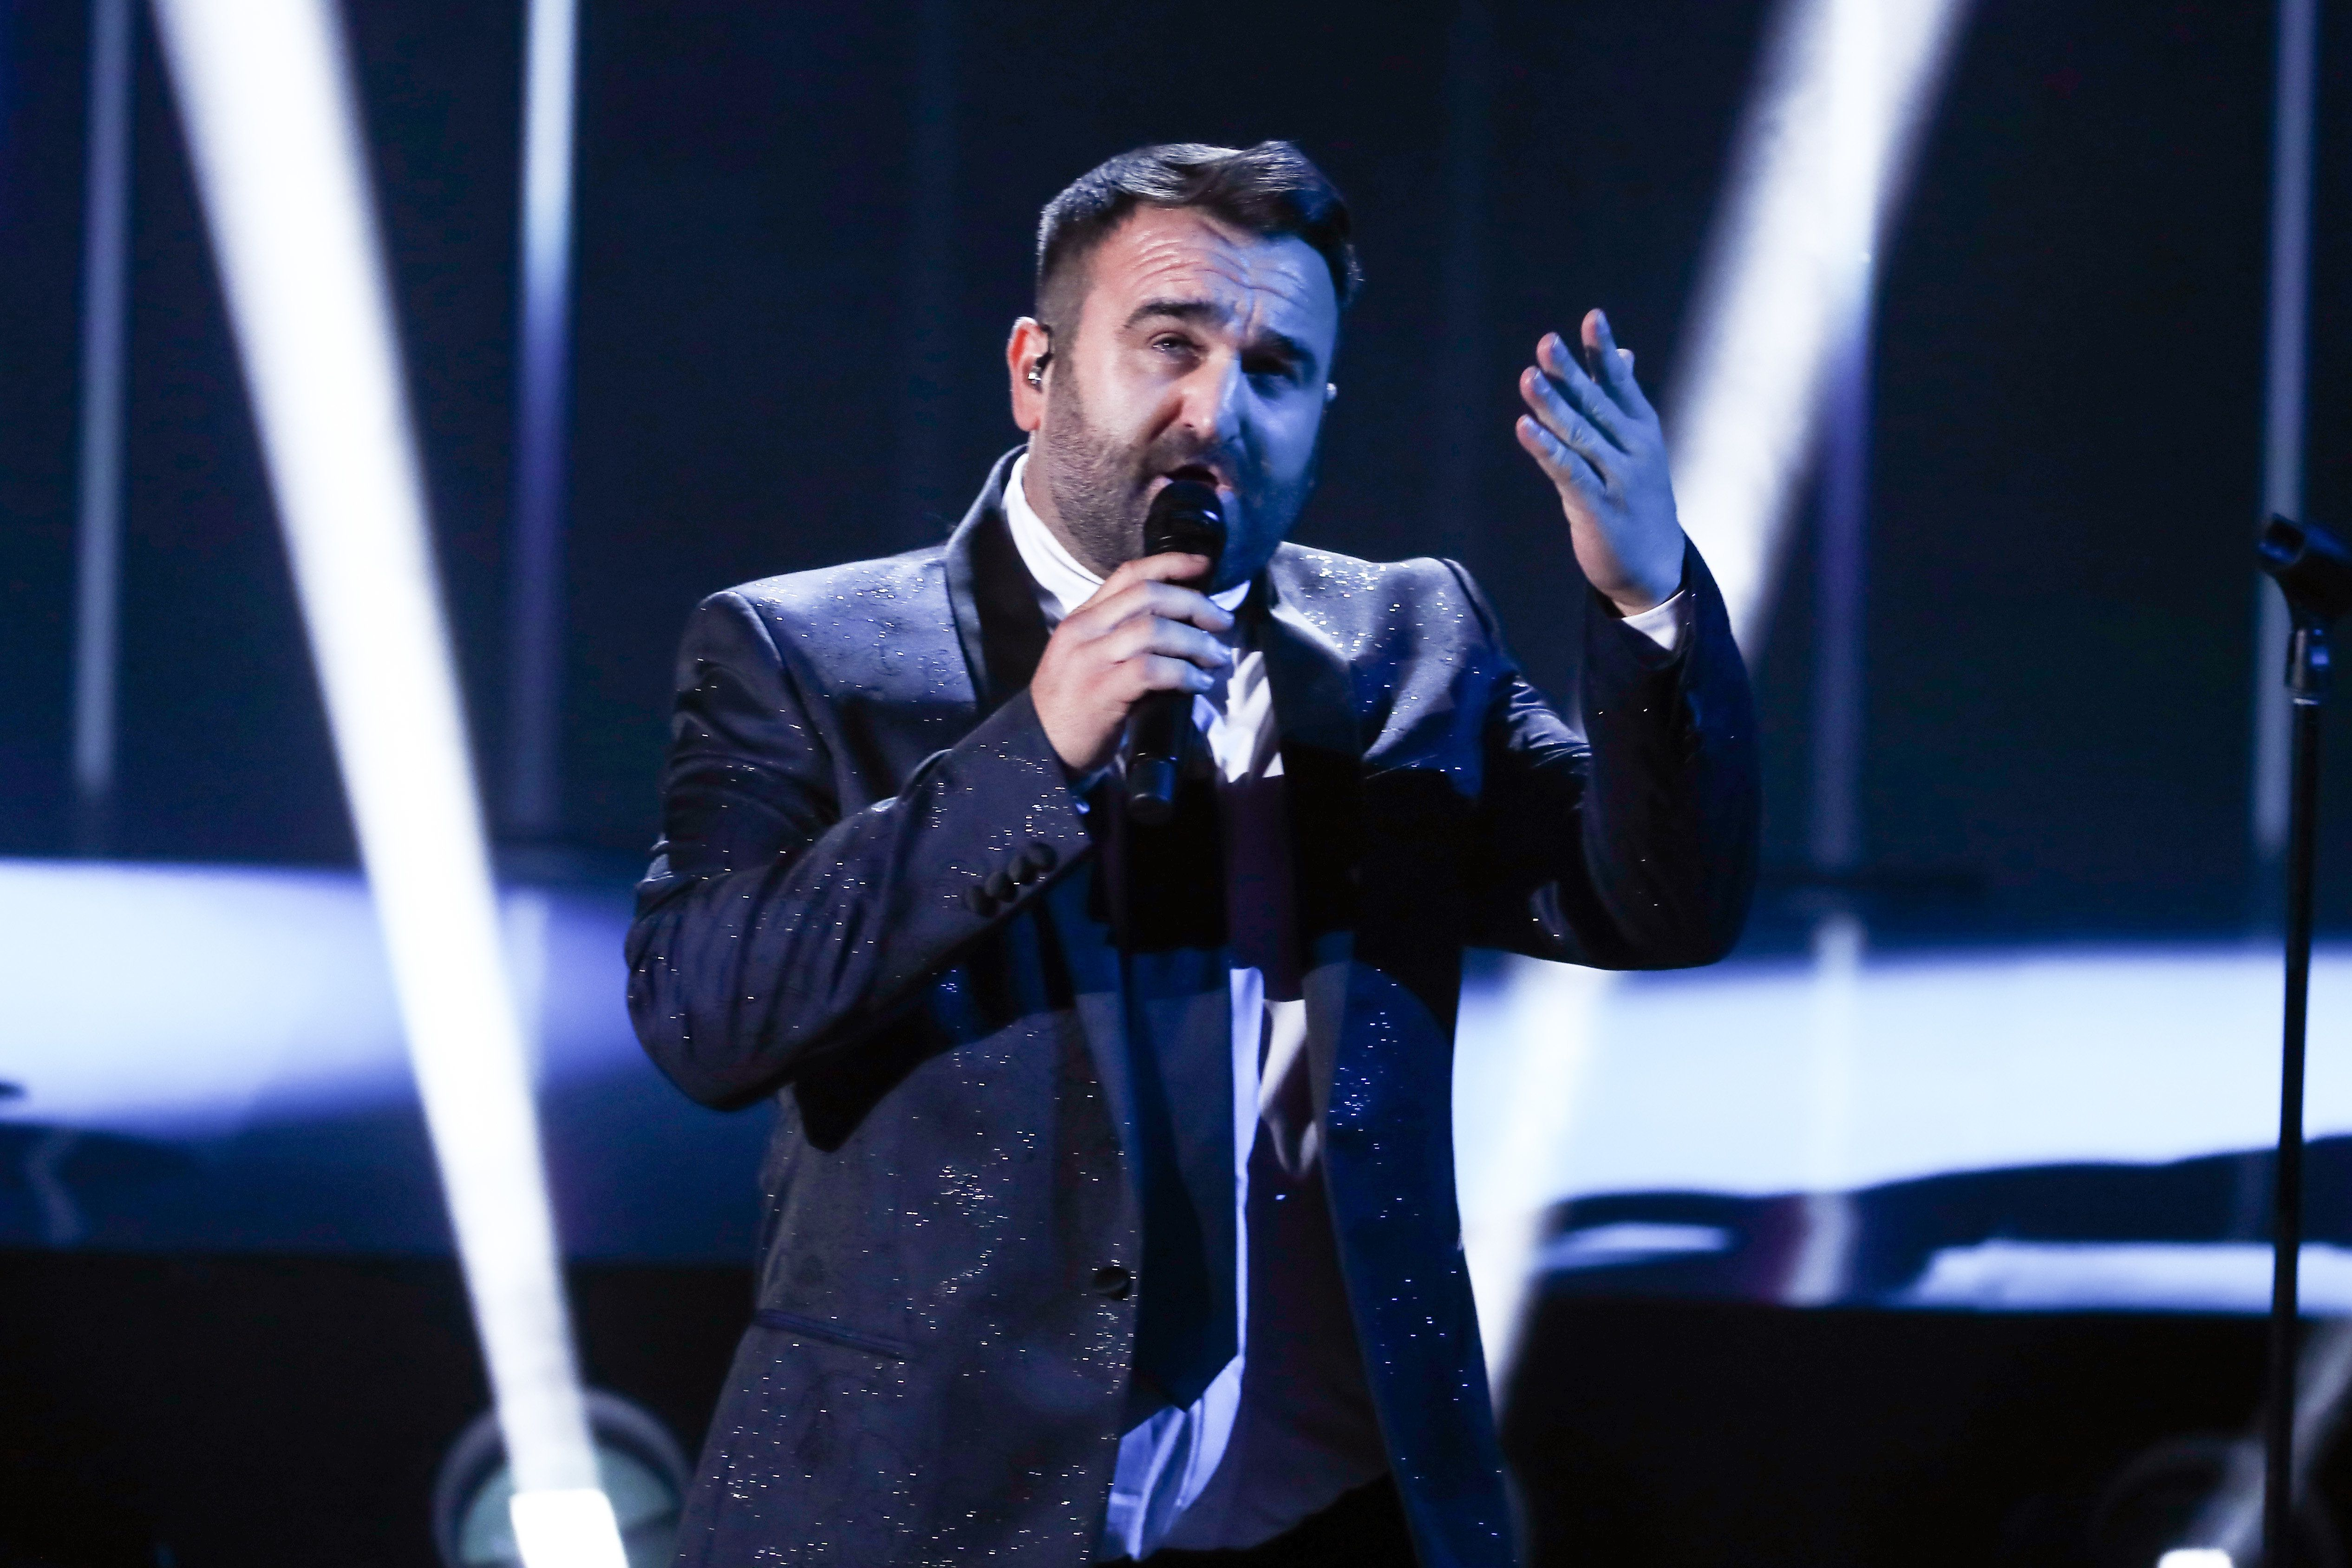 First 'X Factor' Live Show Hit By Technical Blunder During Danny Tetley's